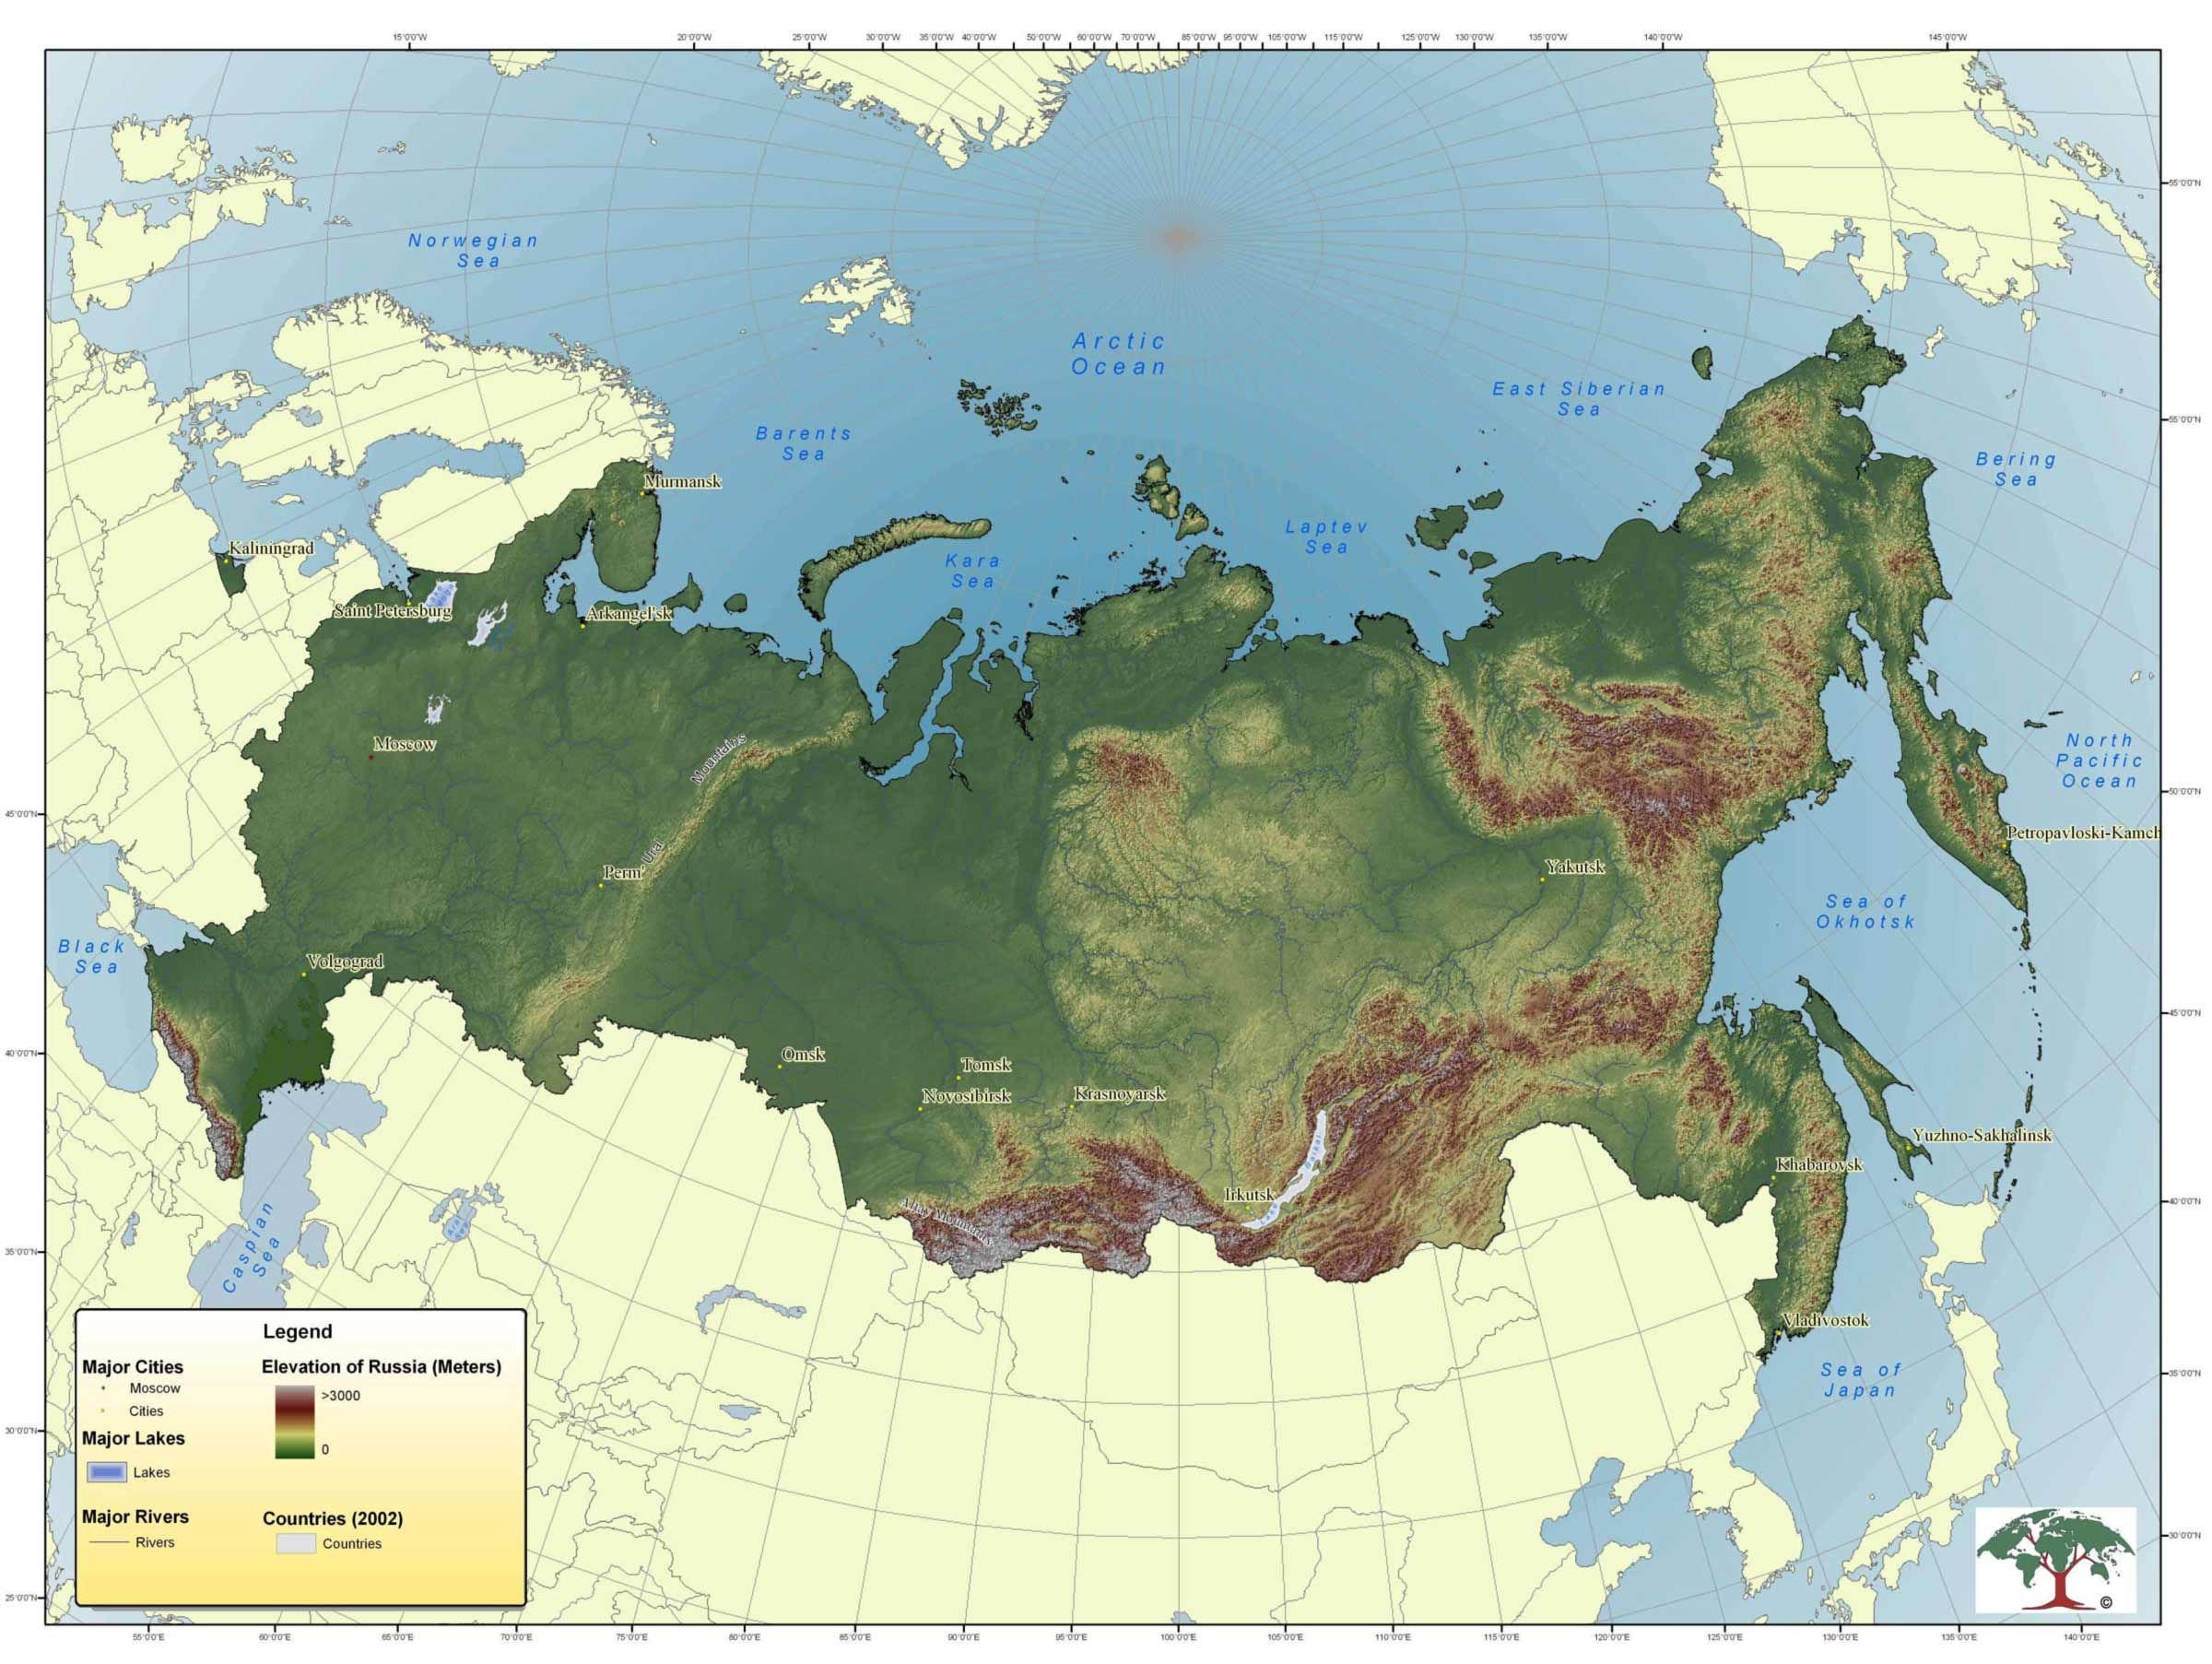 Topographic Map of Russia • Mapsof.net